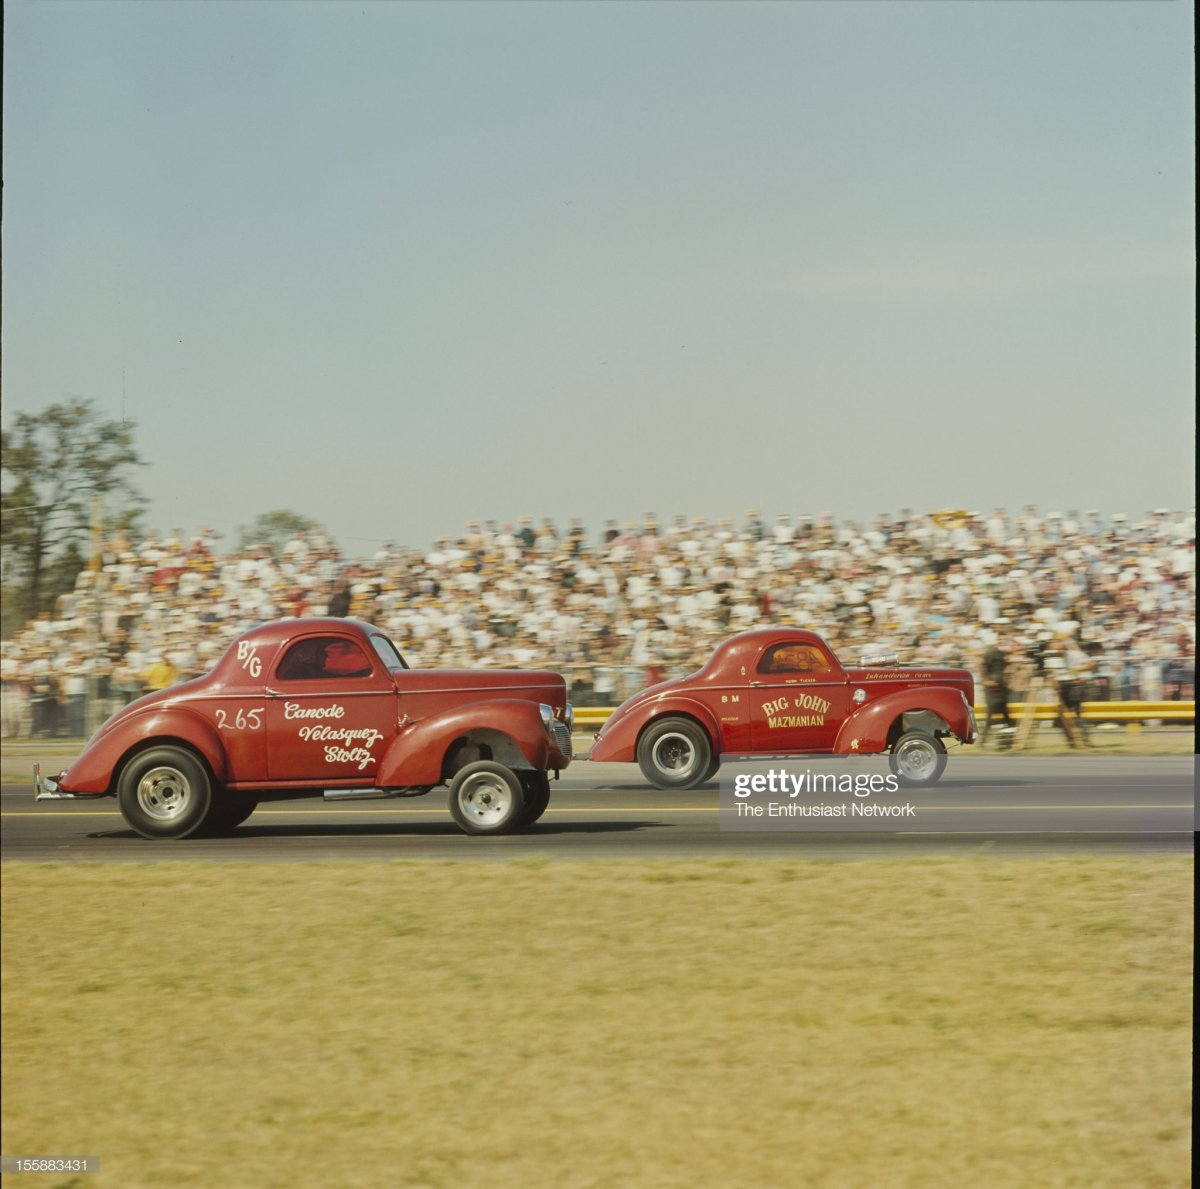 1964 NHRA Nationals Drag Race - Big john vs....jpg